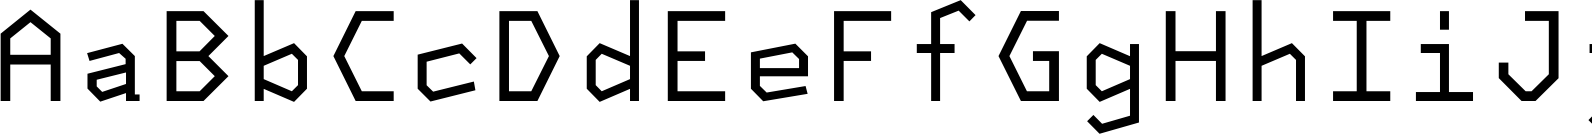 NeueKonst Square Regular Font